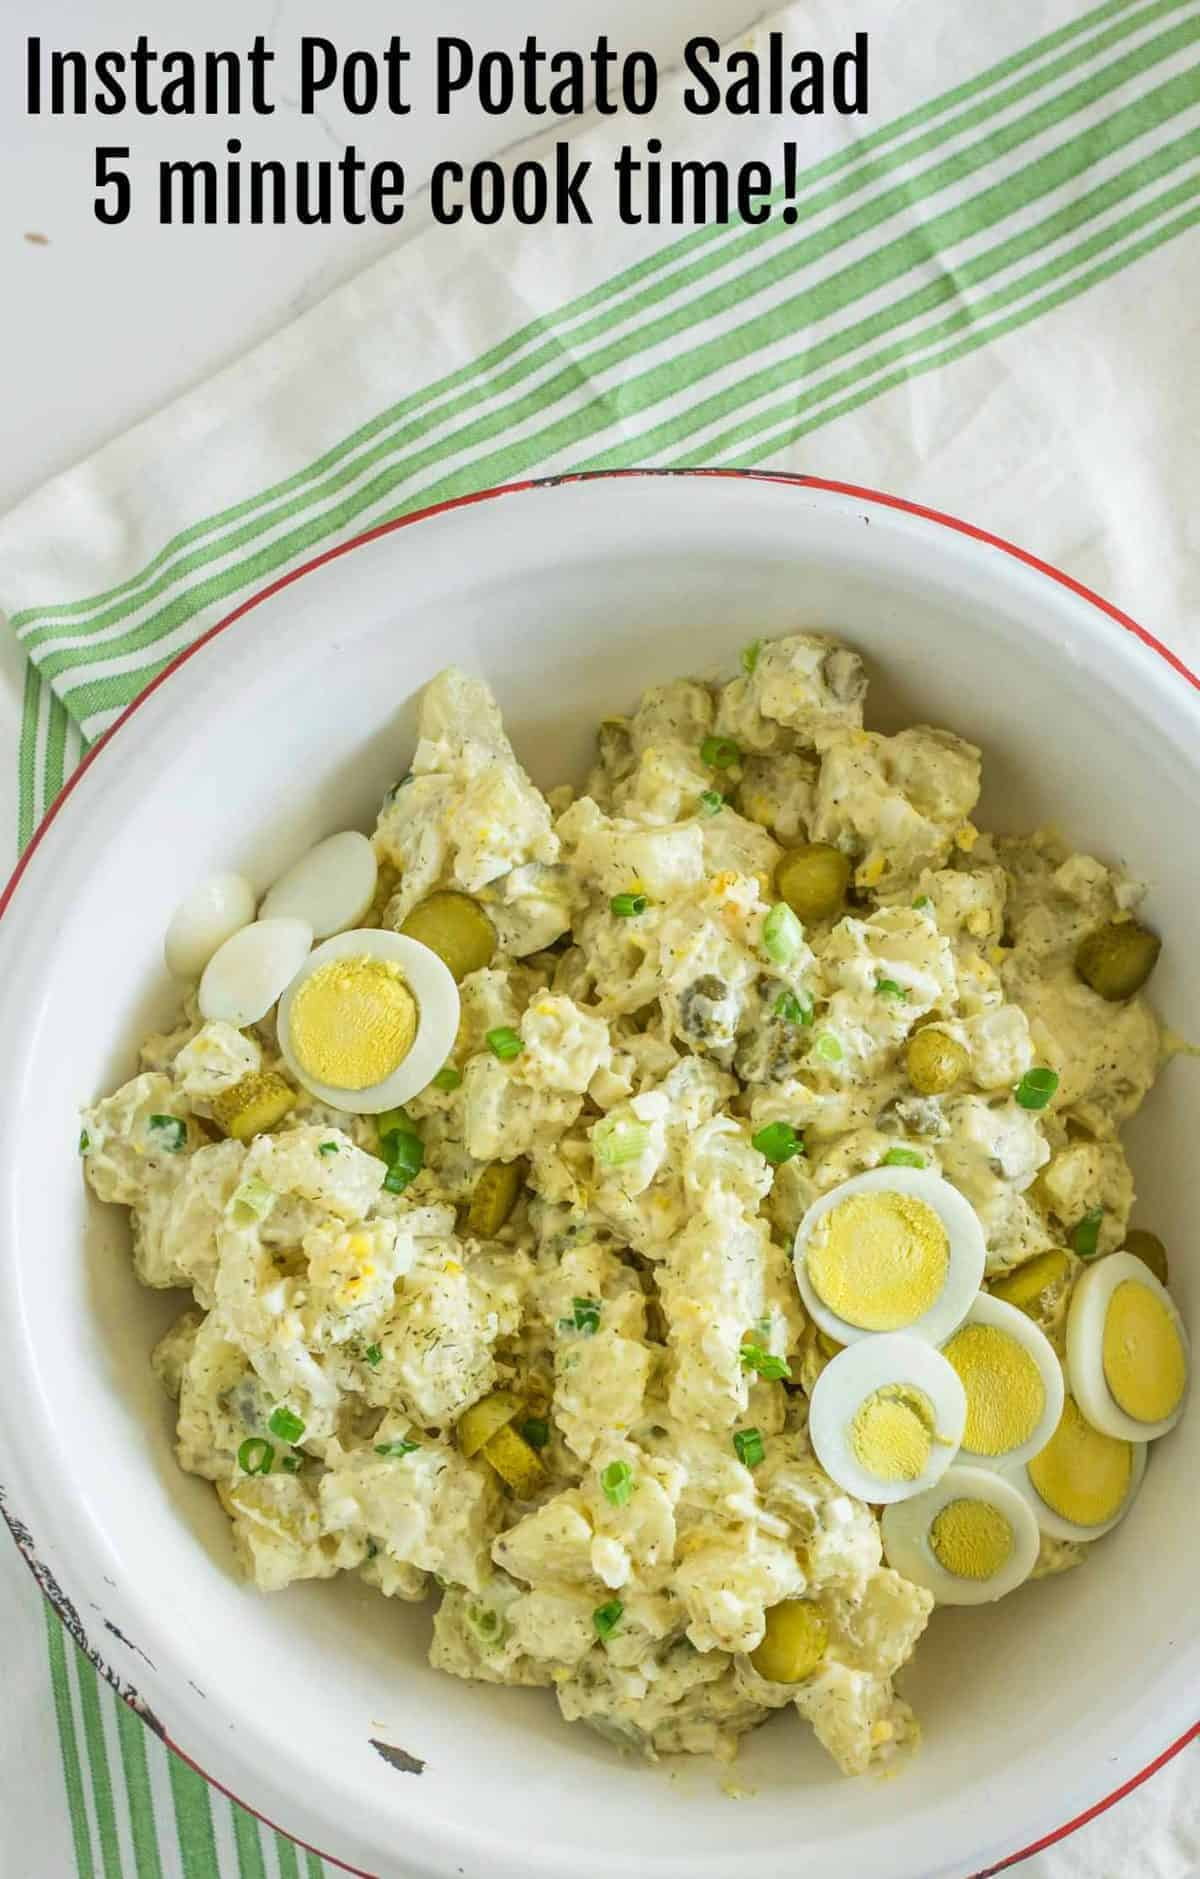 Instant Pot Potato Salad that only has a 5 minute cook time and you cook the eggs right along with the potatoes, plus there's a secret ingredient.